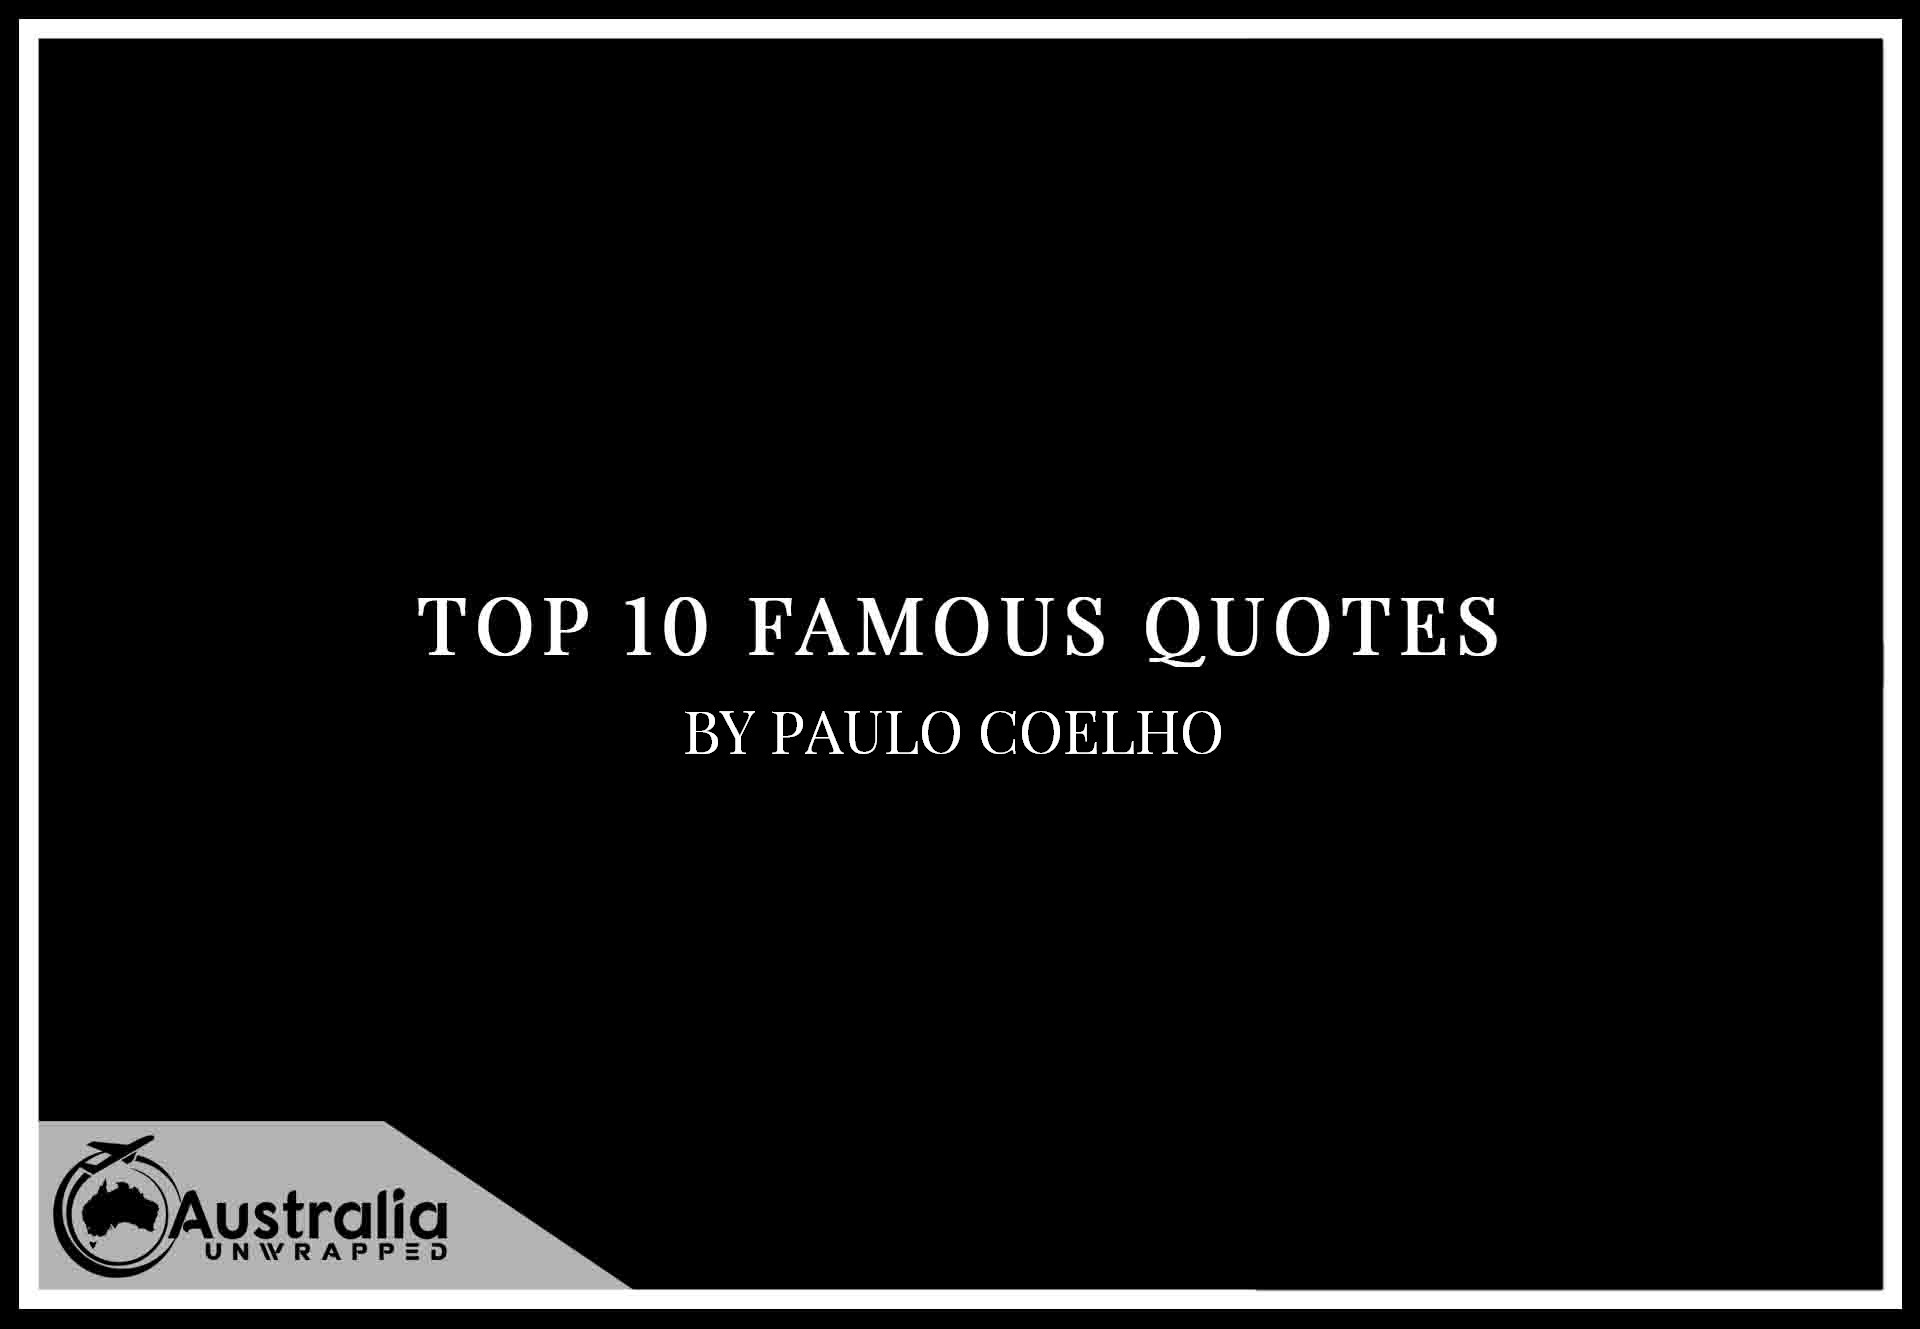 Top 10 Famous Quotes by Author Paulo Coelho